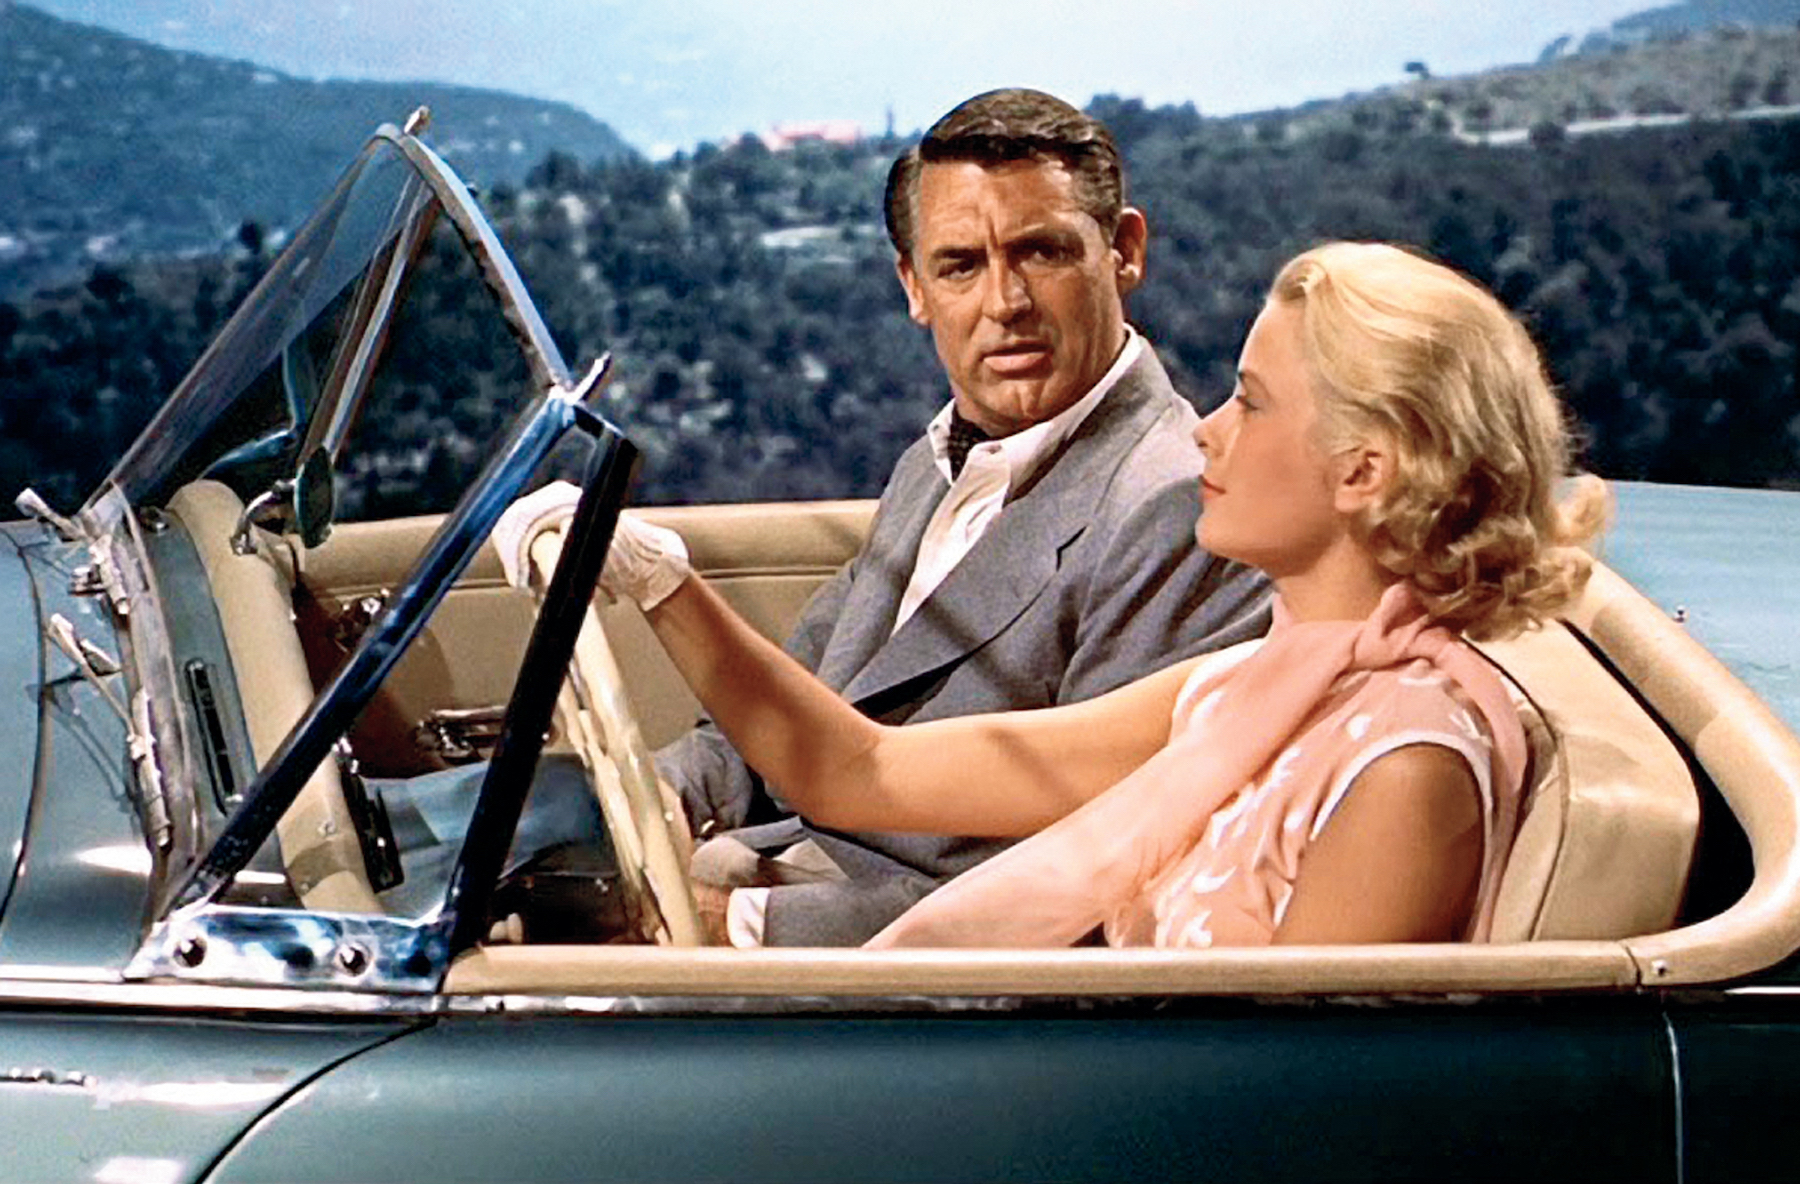 Off to a picnic lunch with Grace Kelly at the wheel of her Sunbeam Alpine Series III convertible.